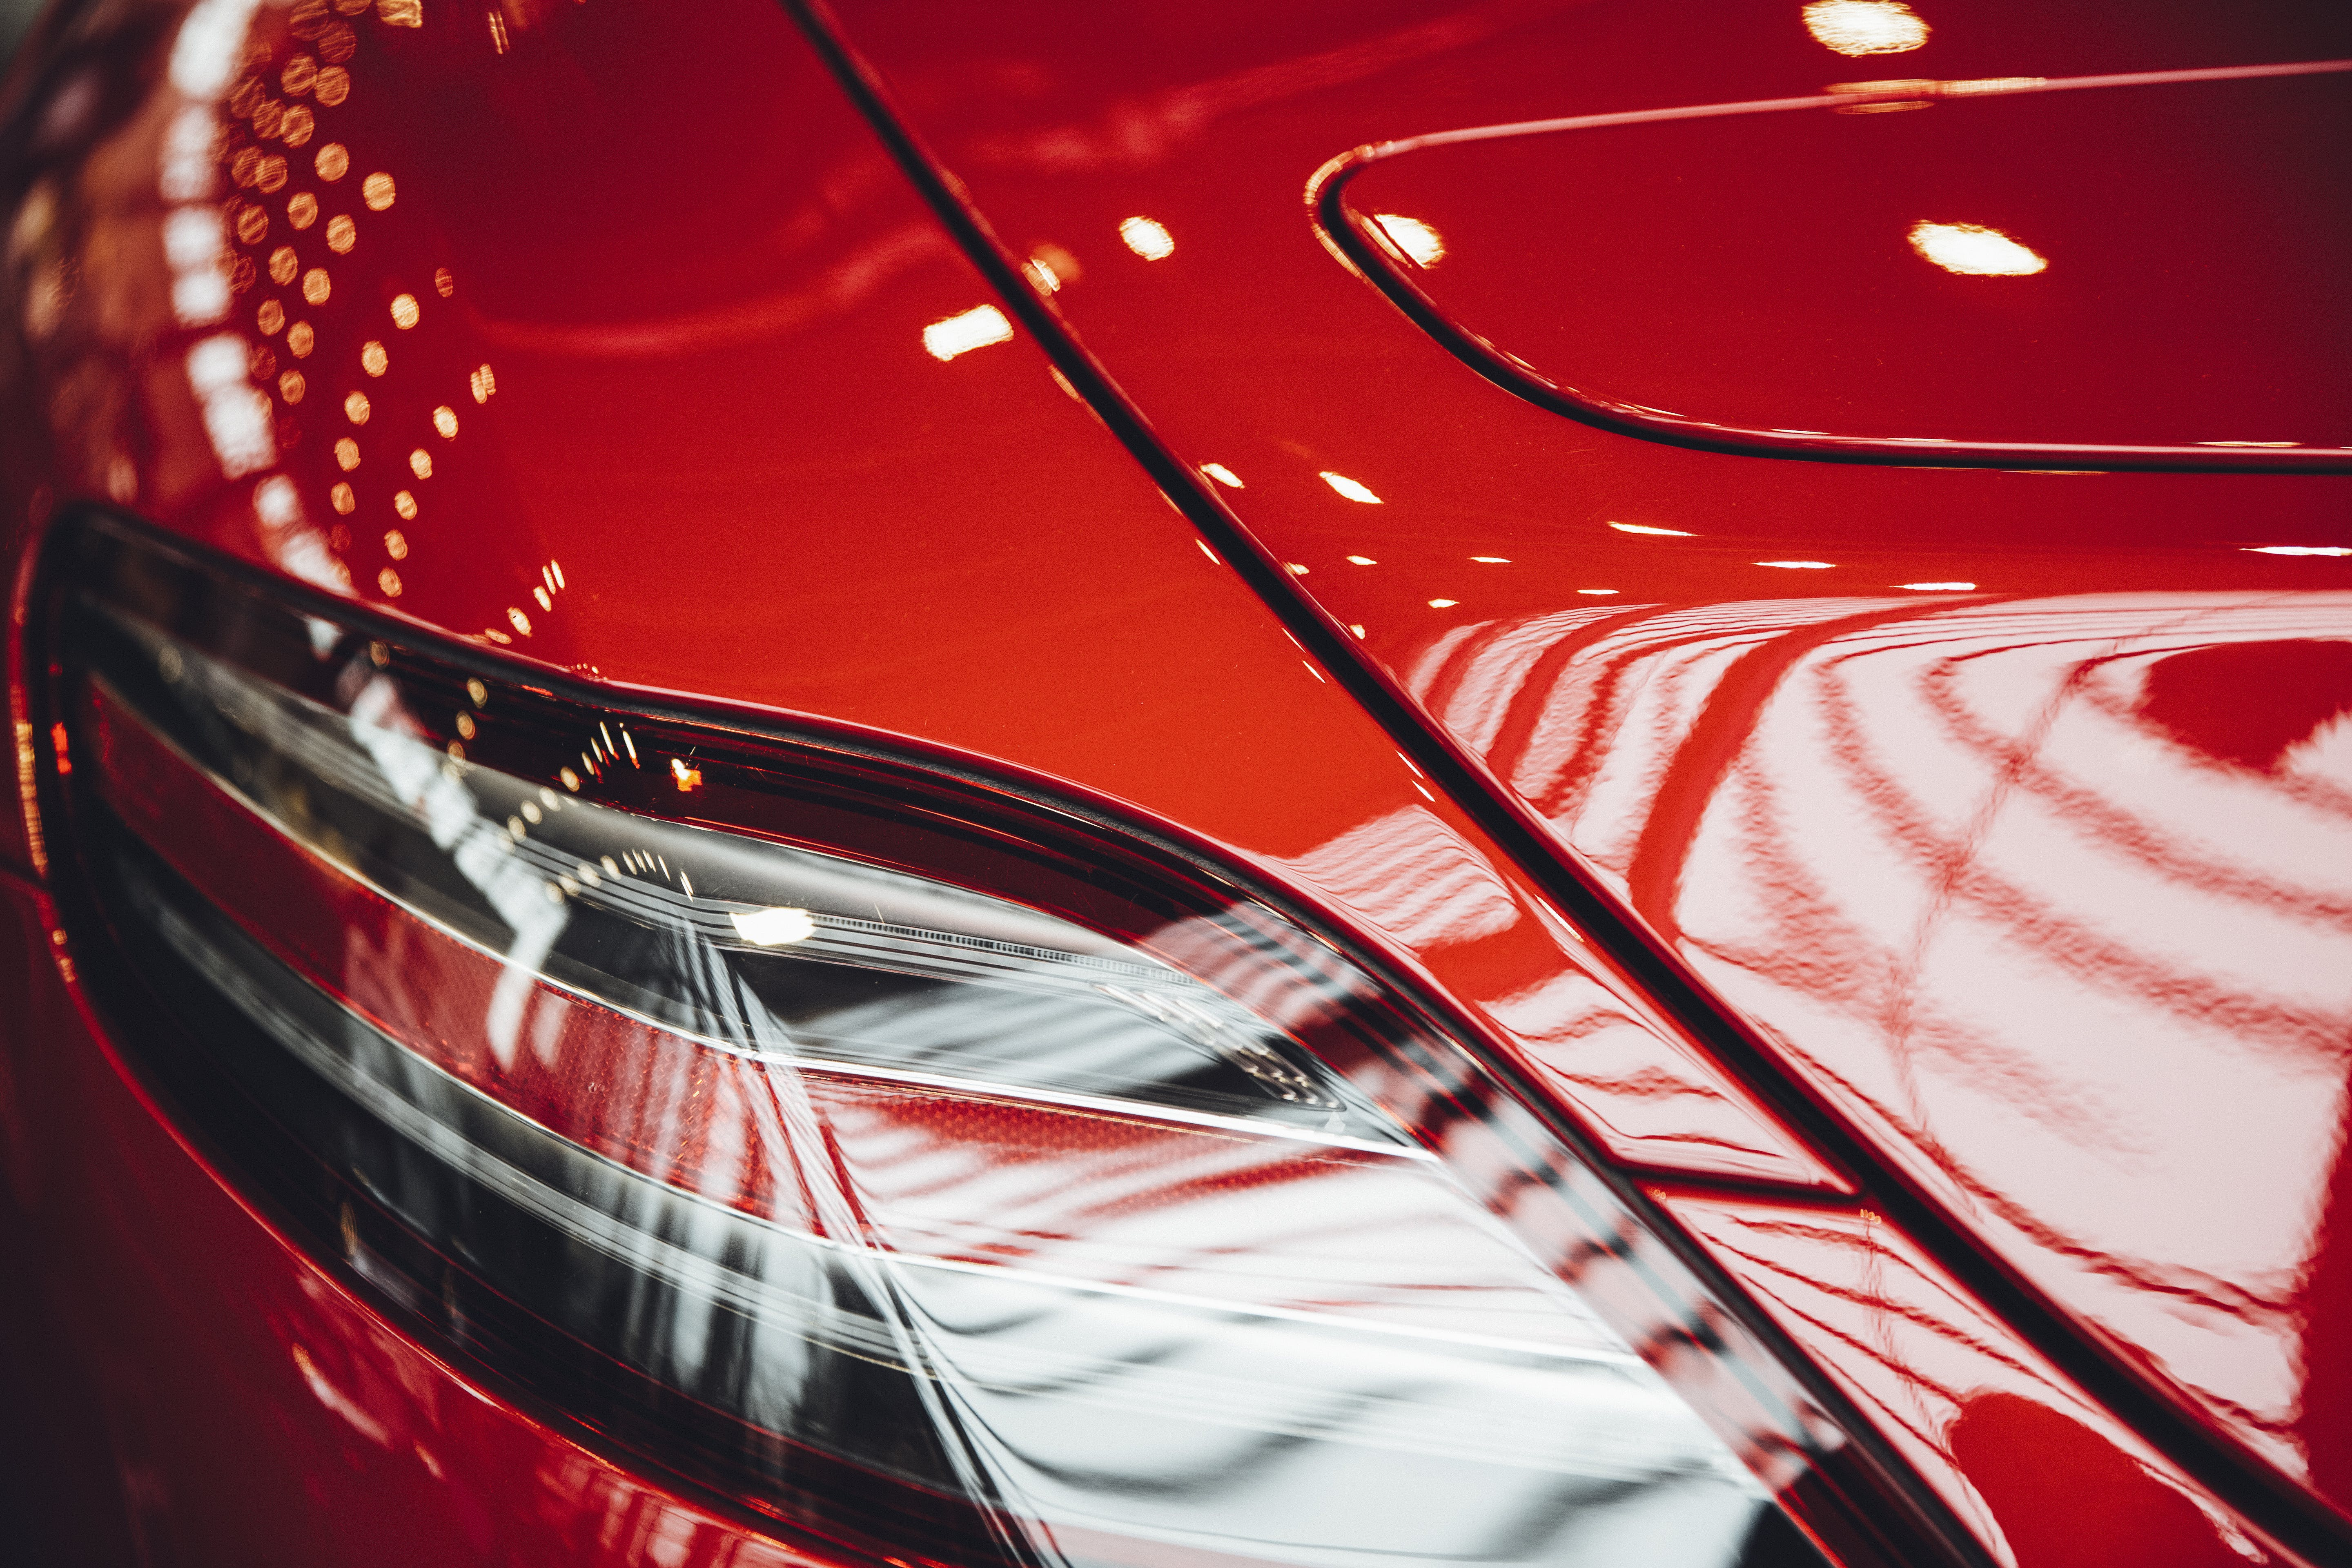 Close-Up Photo of Red Car